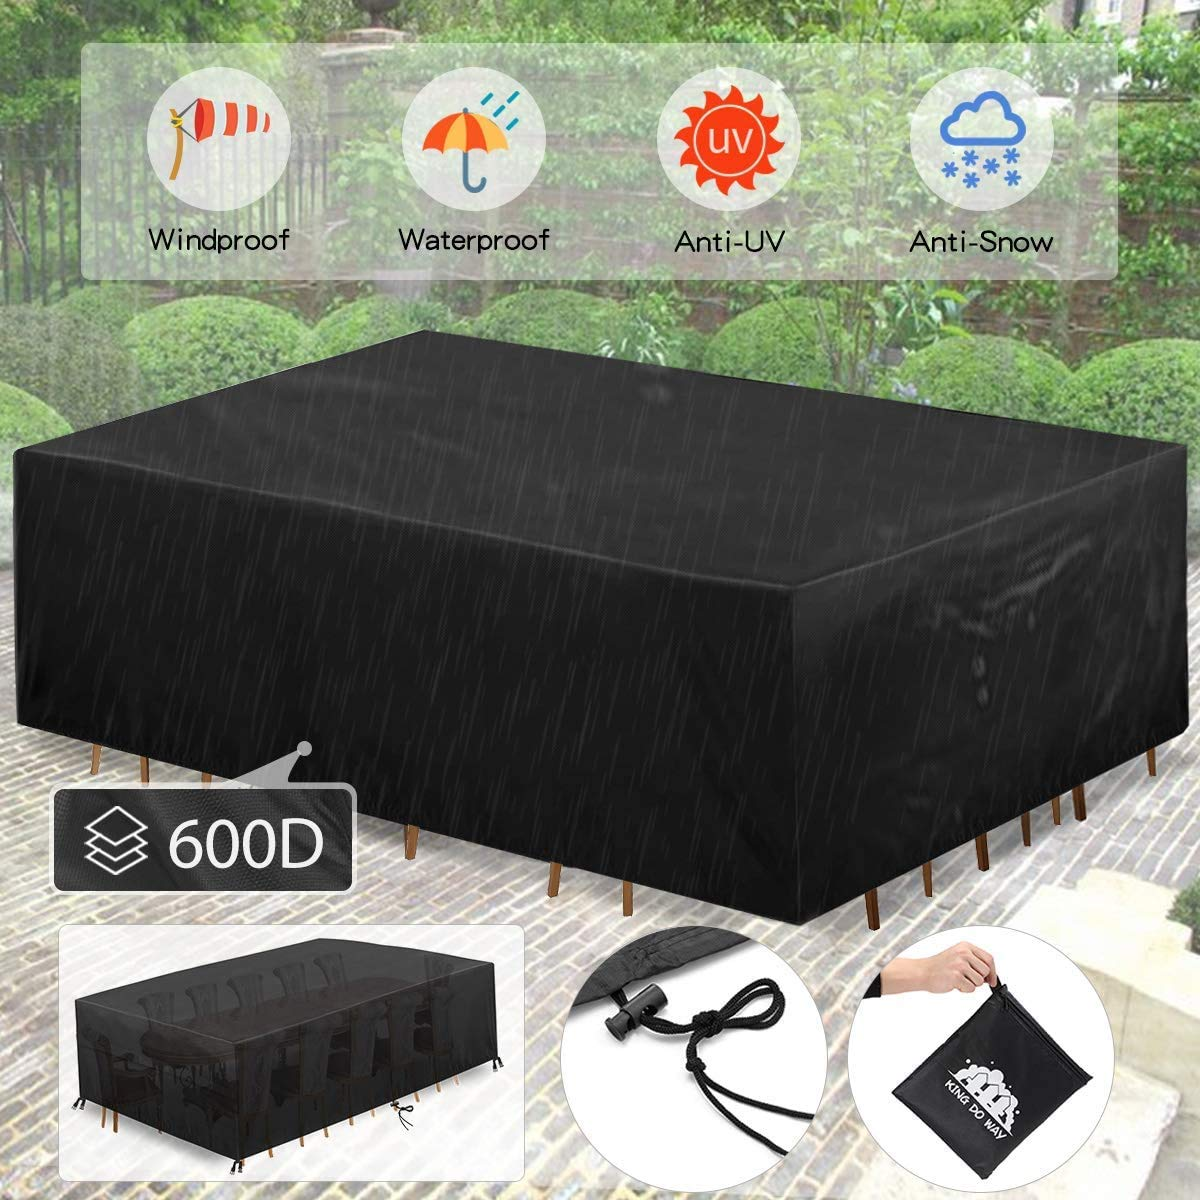 """king do way Patio Furniture Covers 124""""X70""""X29"""" Extra Large Patio Table Covers Rectangular Covers with 4 Windproof Buckles..."""